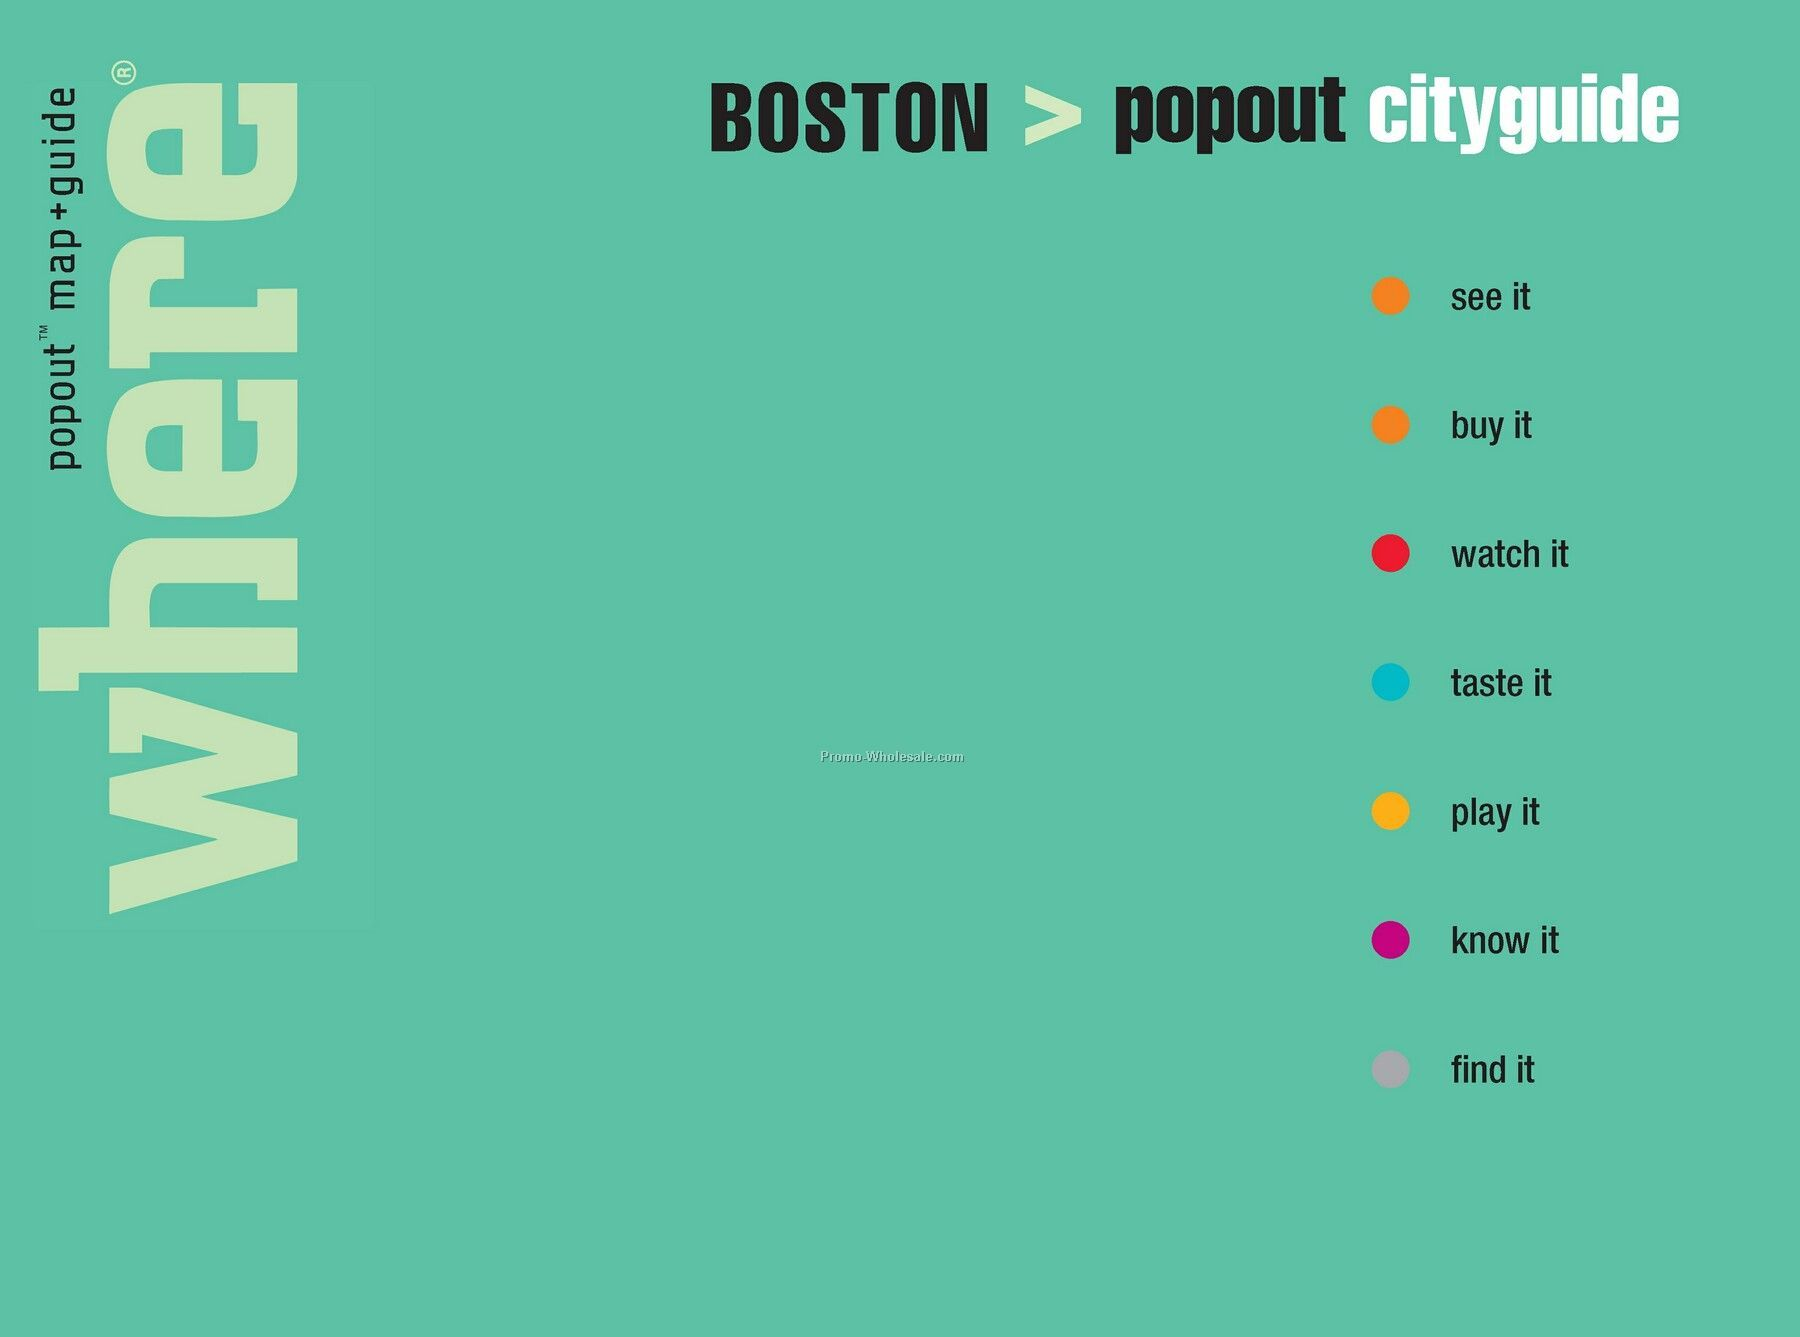 Travel Guides - City Guide Of Boston - Featuring Popout Maps